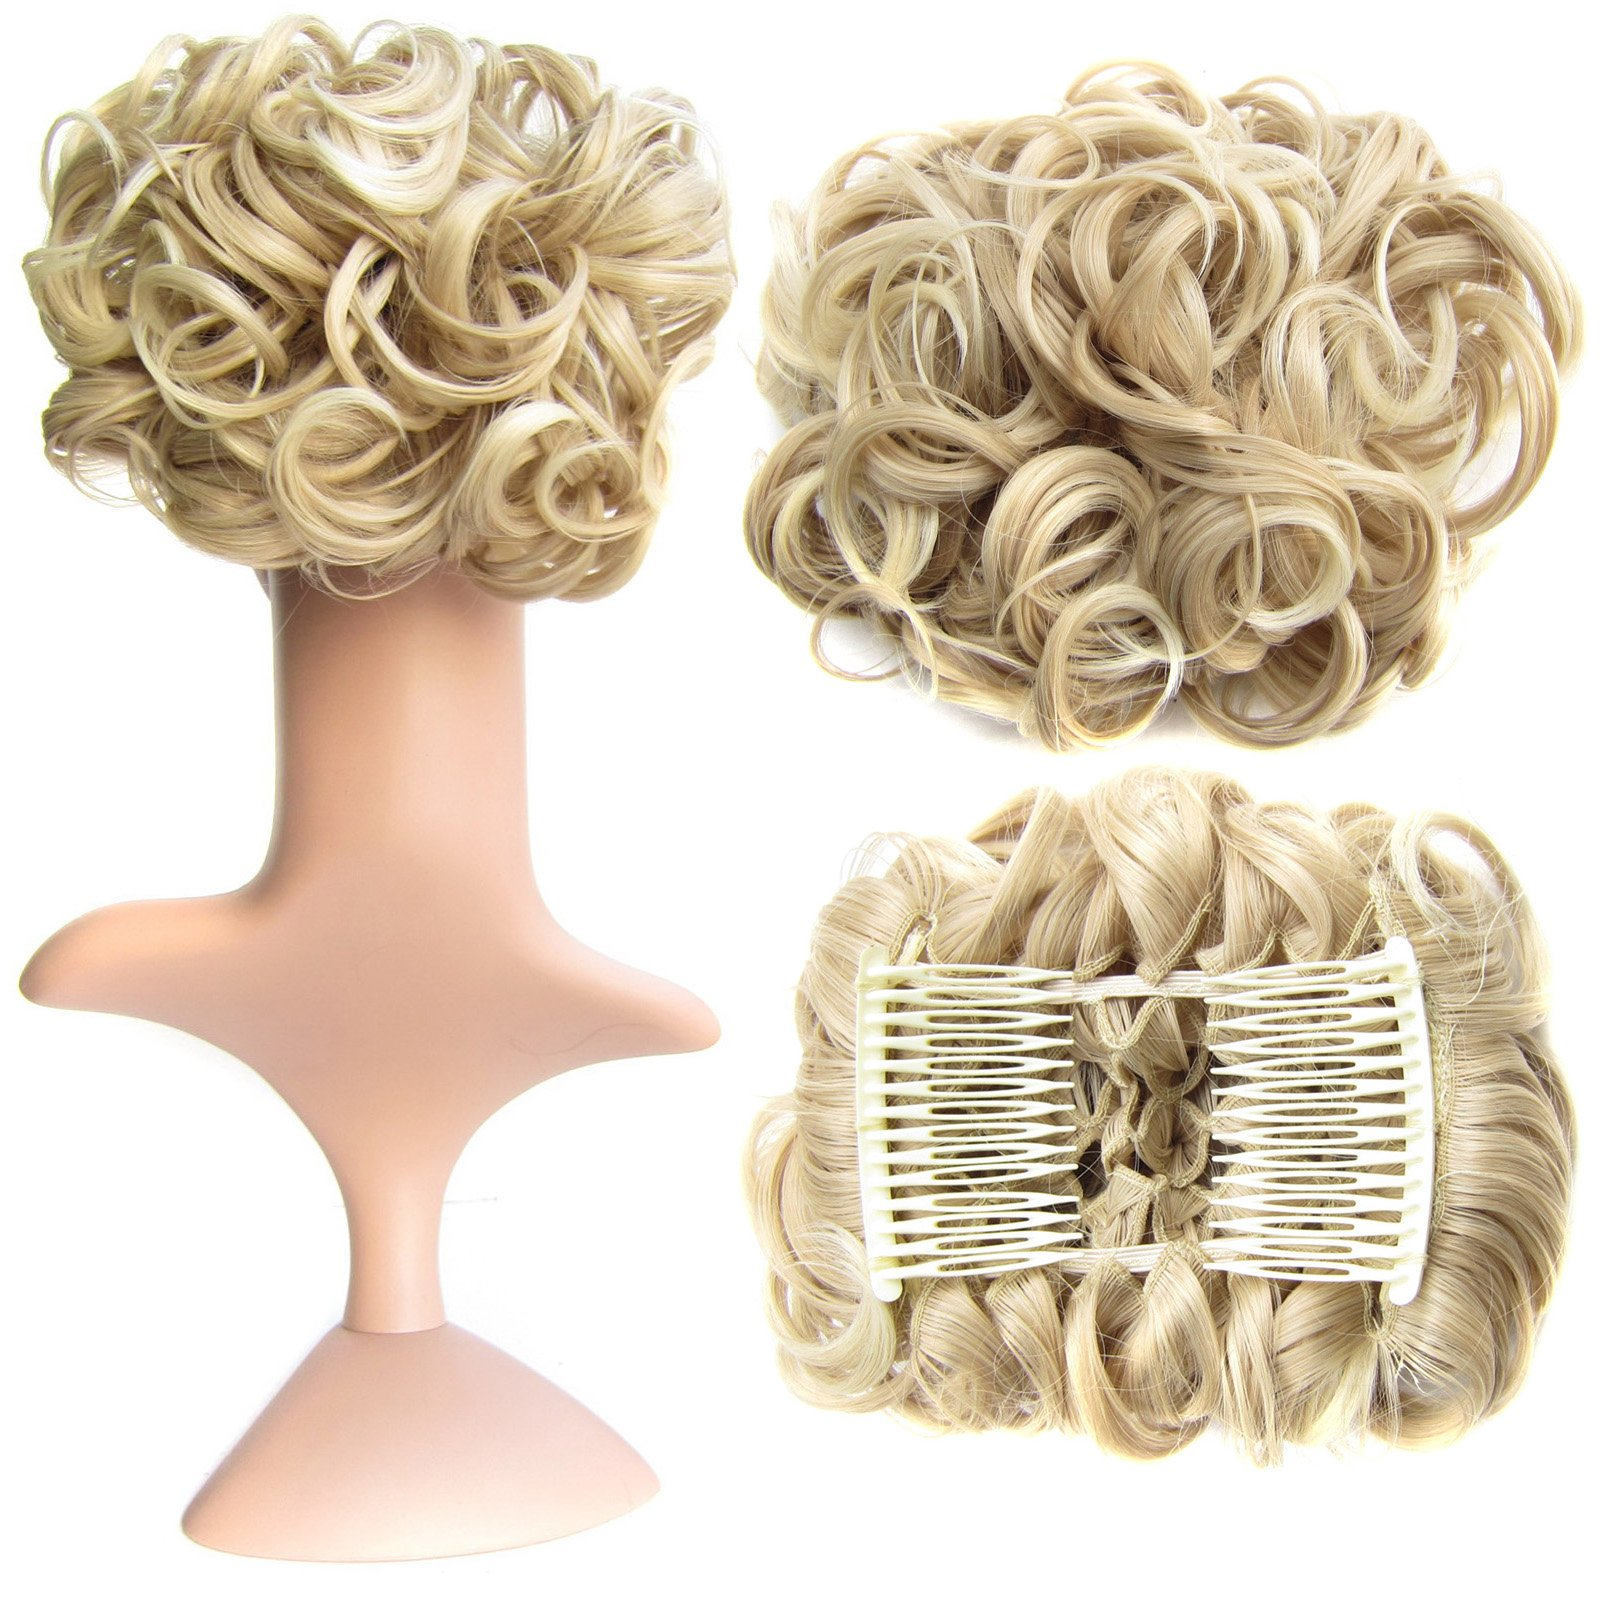 Cheap Blonde Curly Hair Piece Find Blonde Curly Hair Piece Deals On